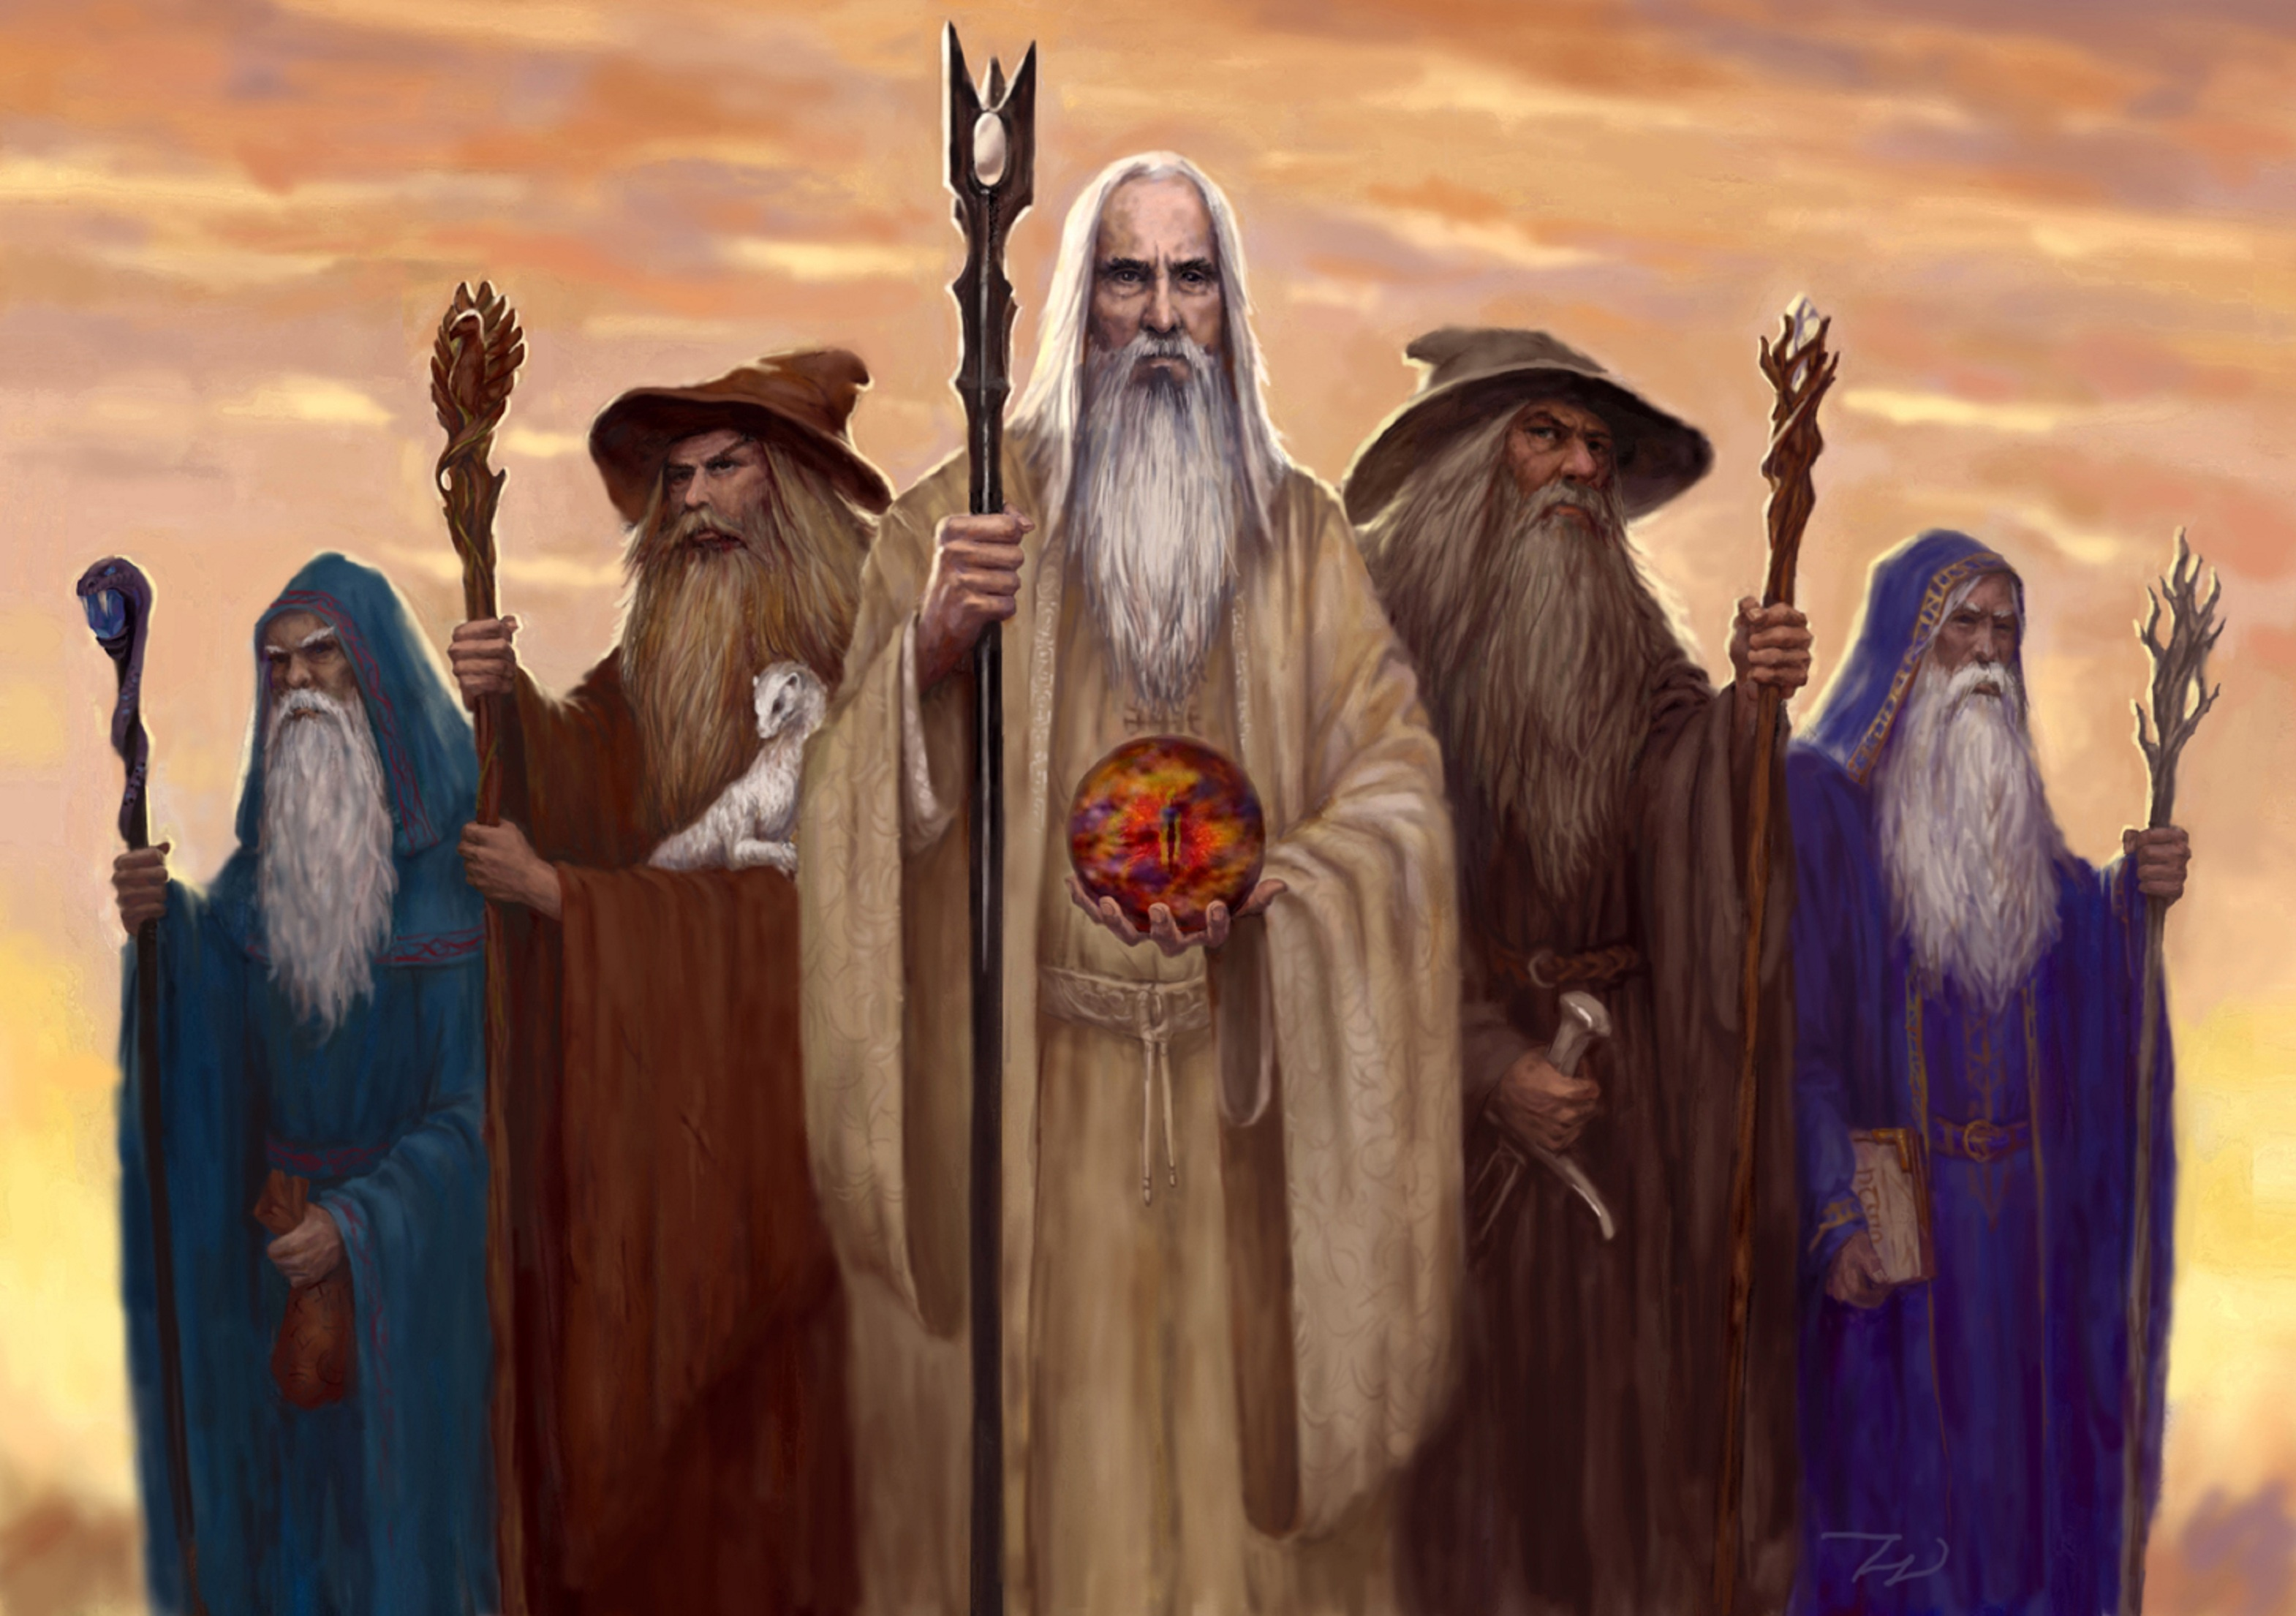 an examination of the role of the mythical elbereth in the lord of the rings by jrr tolkien There is undoubtedly much in tolkien's lord of the rings that invites us jungian archetype checklist for tolkien's on his rightful role as the.